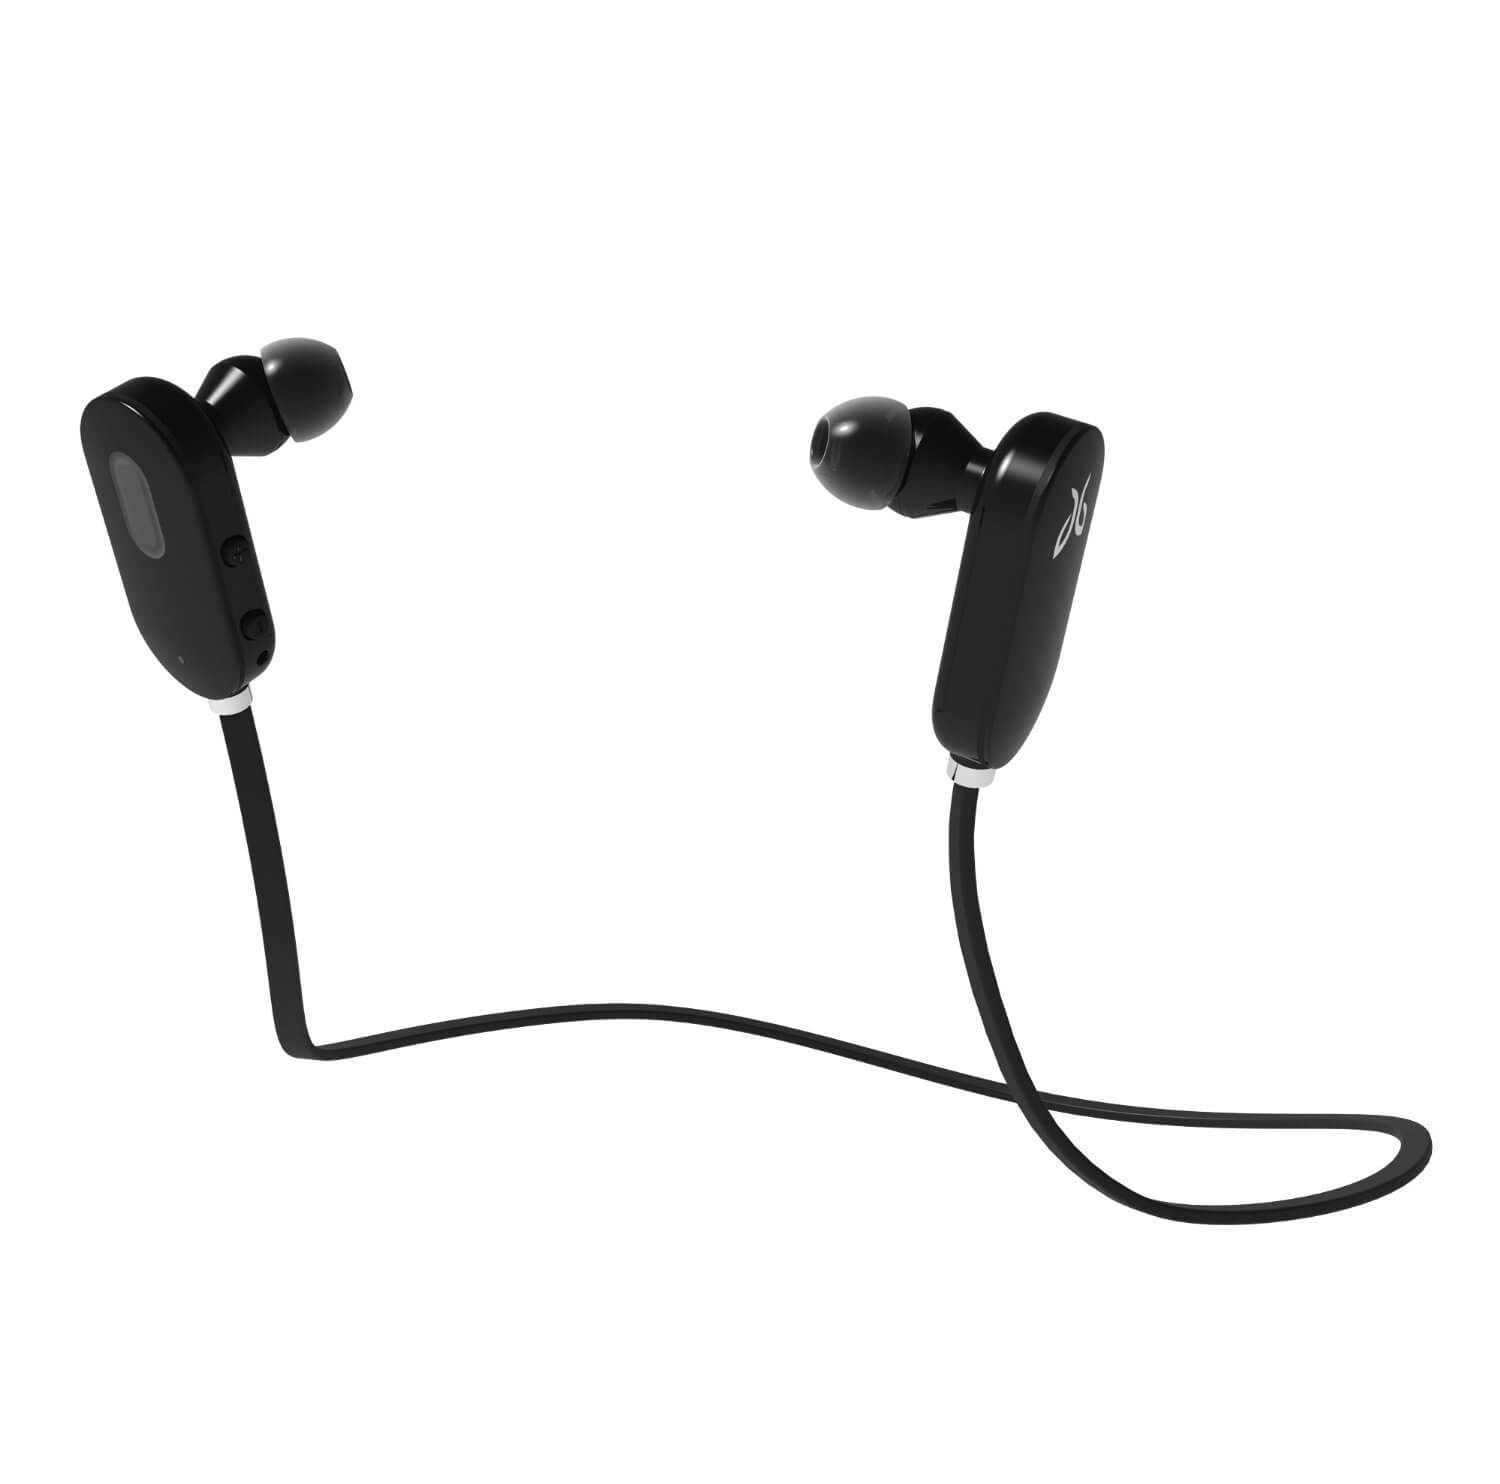 jaybird-freedom-wireless-earbud is a sweat proof outdoor use headset